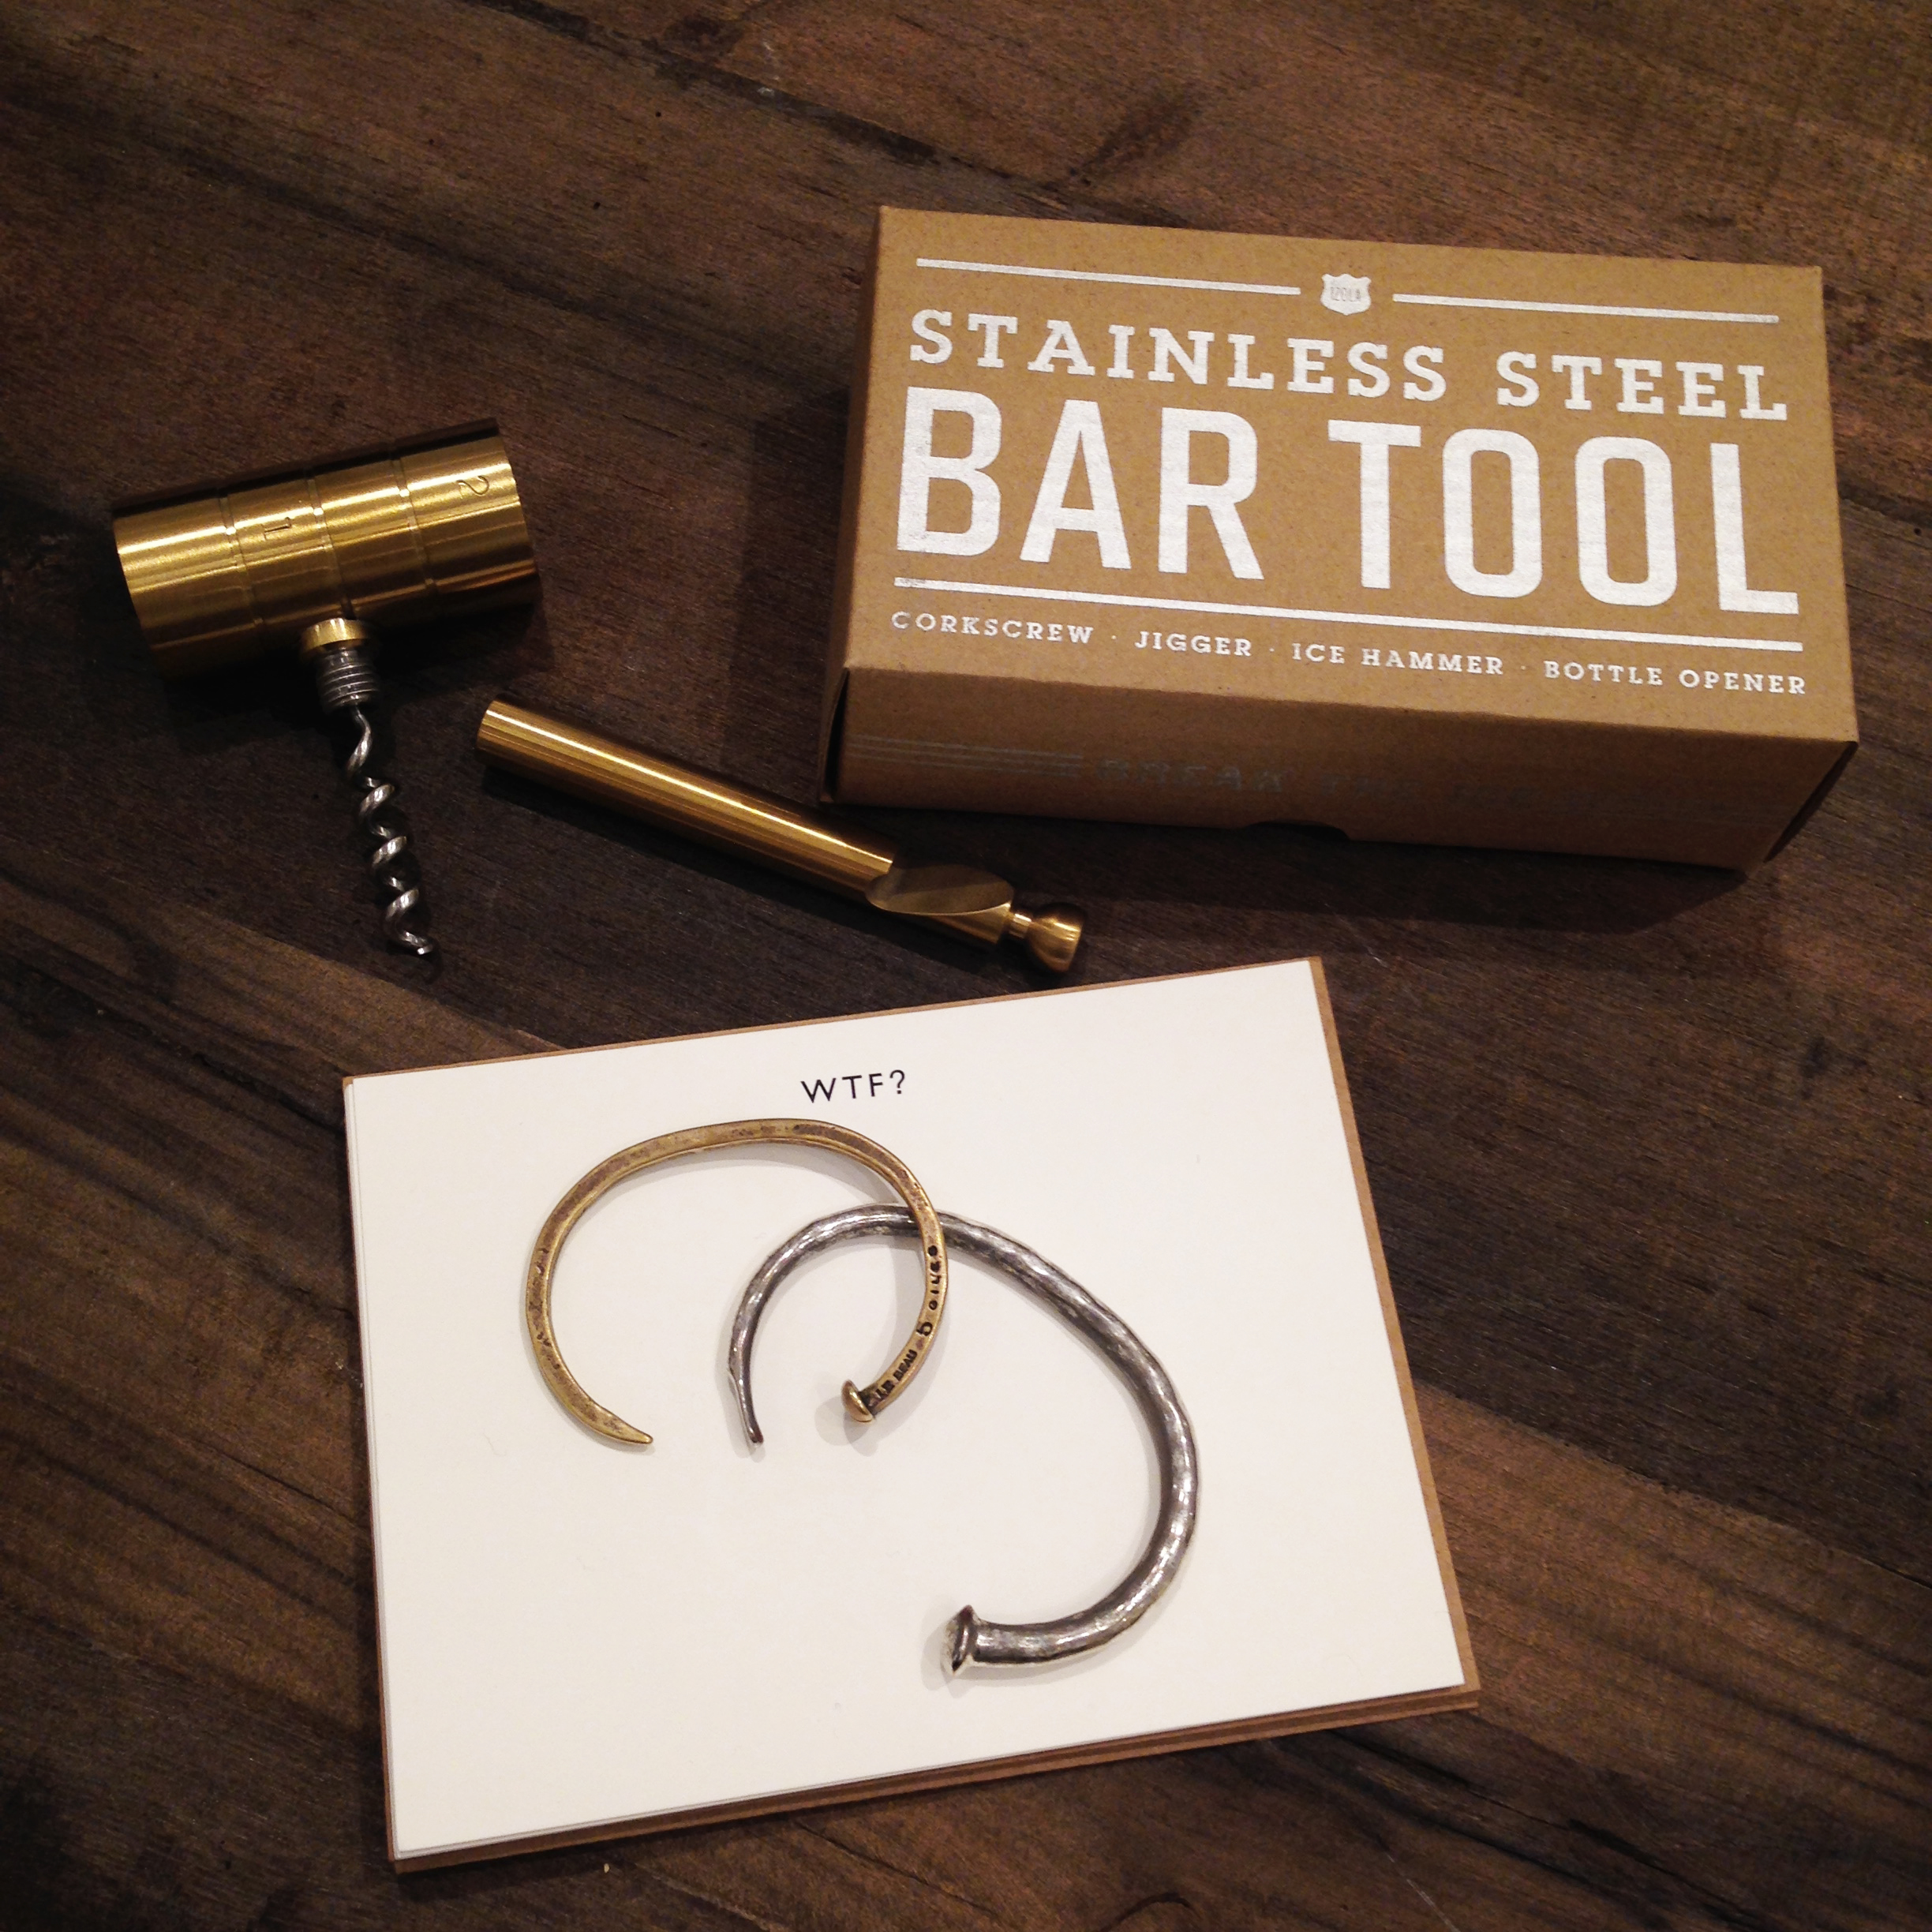 """1.   Izola 4-in-1 Bar Tool  - This is an awesome gift for any guy. You can measure liquor, open a bottle of wine, open a bottle of beer and break ice all with one tool. Comes in brass or silver and this streamlined box. Izola is an NYC based company and most of their products are Made in America. It's run by two guys who are passionate about bringing beautiful design to everyday objects.I picked this one up for someone I know and now I just want to keep it for myself! #sorrynotsorry  2.   Terrapin Stationary   - Terrapin is another family run NYC brand and they have some kick-ass stationary. I know you're thinking """"who uses stationary anymore?"""". Well, you will when you see their cards. What better way is there to say """"I love you"""" than """"Je F*cking T'aime""""? (Which they also have printed in English if you're not that classy). It's like Don Drapper on a thank you note. They're sold online and in a few different retailers. Check out their site for a full list.  3.   Giles & Brother Railroad Spike Cuff   - I love Giles & Brother. I wear this cuff almost every day and for those guys who have yet to venture into jewelry, it's a great introduction. Simple, clean, masculine, and goes with everything. I'm upgrading to the safety pin cuff next!  4.  Banana Republic Nail Cuff  - I have a thing for cuffs. What can I say? I keep picking up silver ones to wear with my watches. It adds that little bit of subtle style all guys need. This one isn't available online, but most BR stores are carrying it right now."""